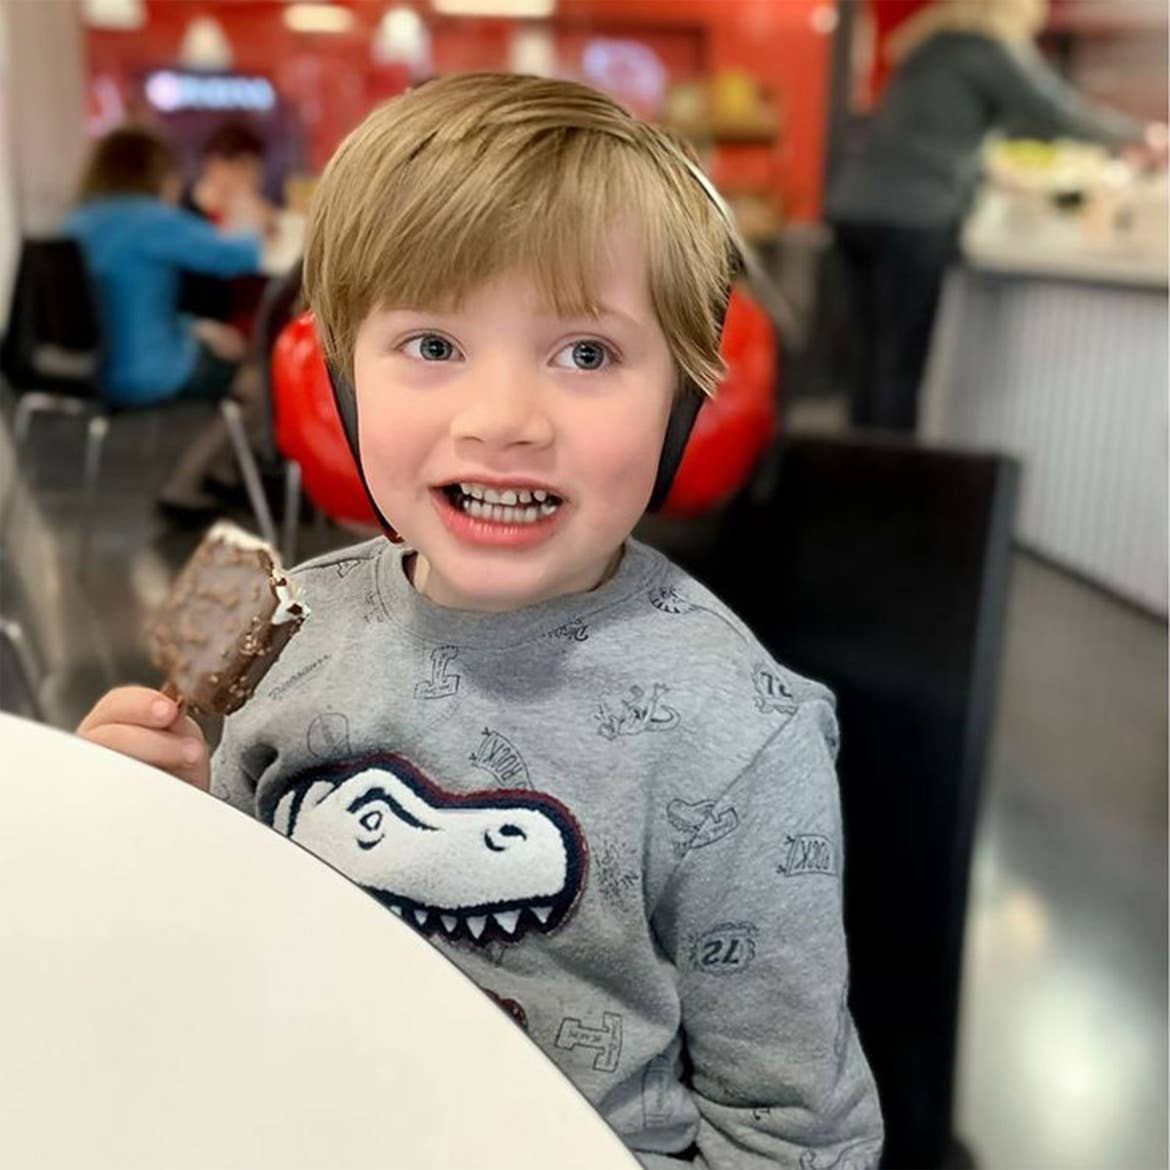 Featured Contributor, Alicia Trautwein's son eats an ice cream bar while wearing red headphones at a dining table indoors.